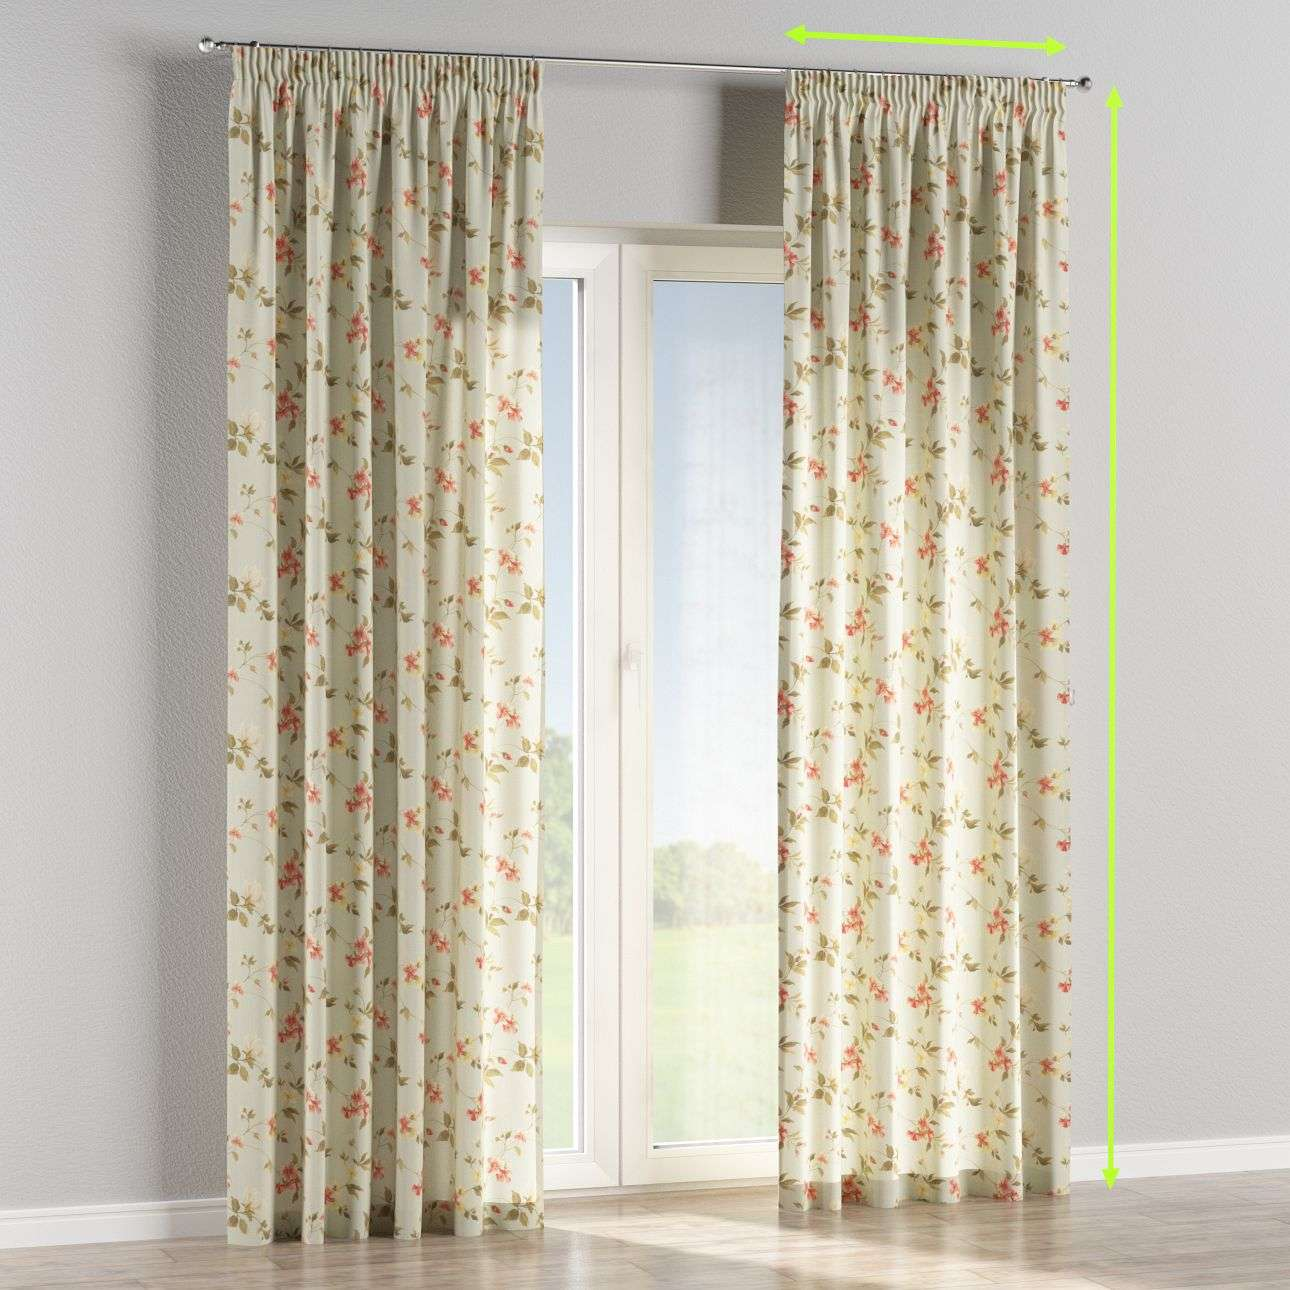 Pencil pleat lined curtains in collection Londres, fabric: 124-65